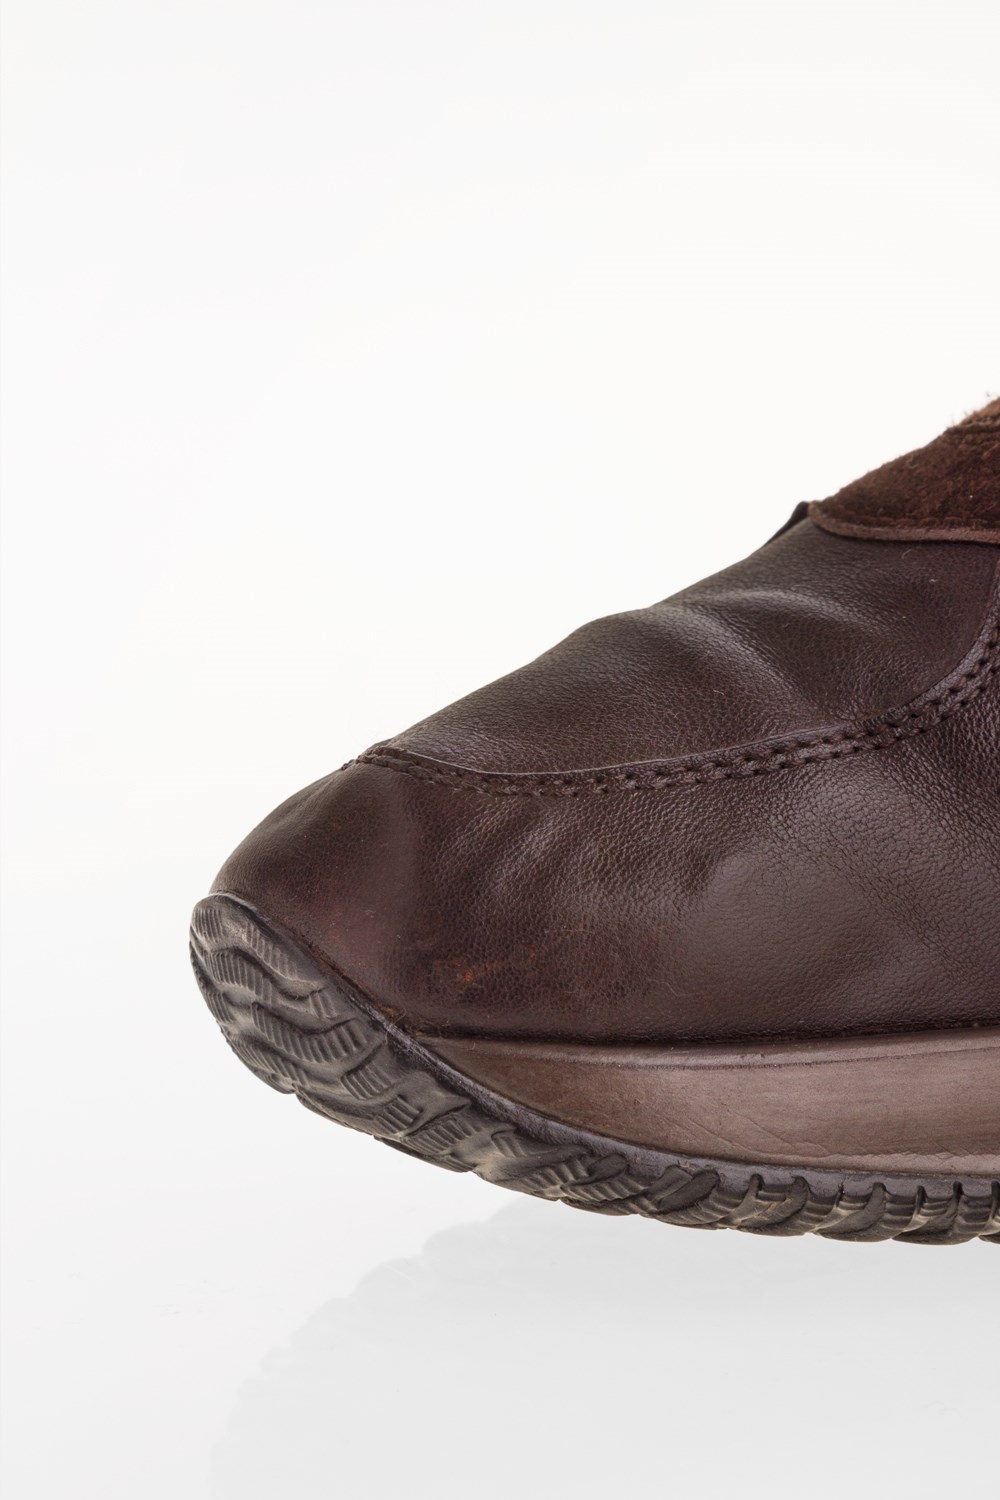 Hogan Leather Loafers Gr. IT 39.5 WP3GeX4wc